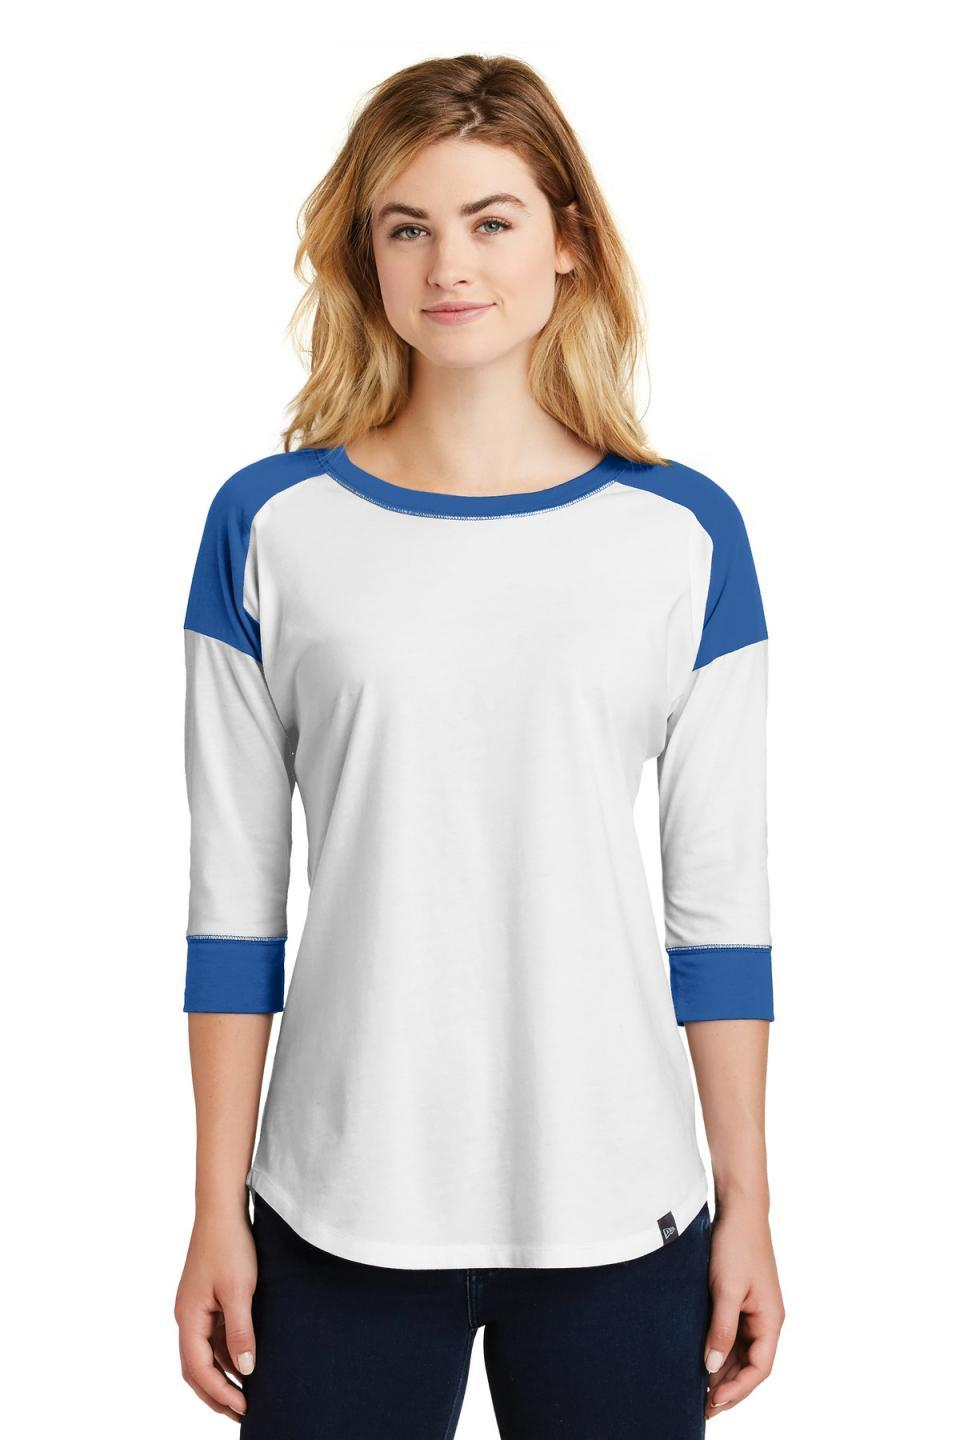 New Era Women's Heritage Blend 3/4-Sleeve Baseball Raglan Tee